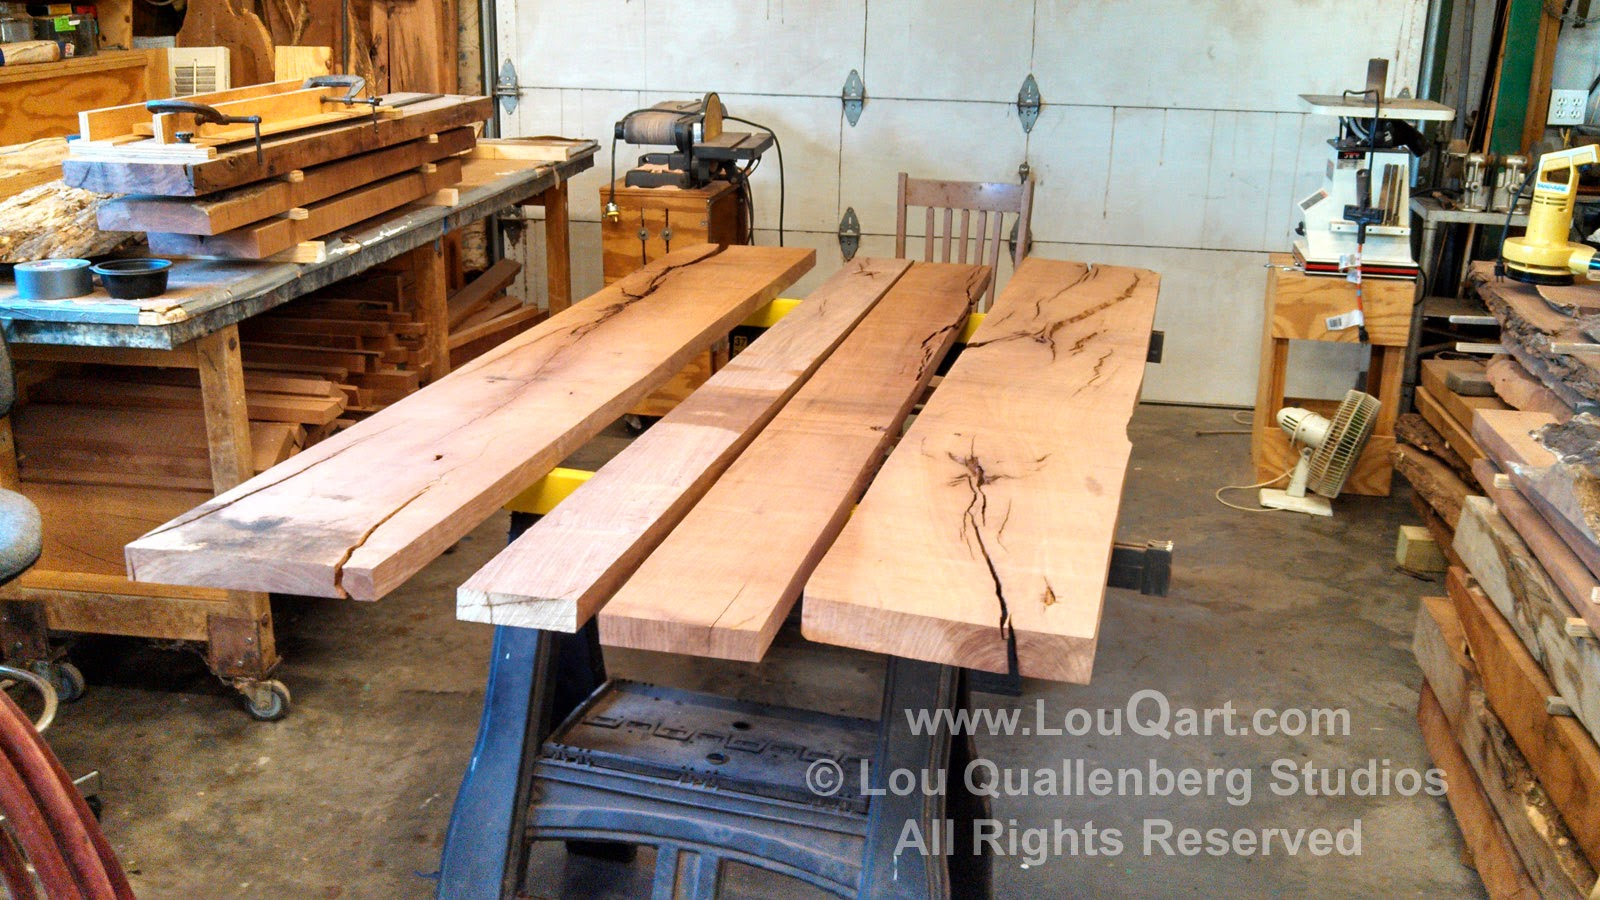 Mesquite to be cut Lou Quallenberg Studios